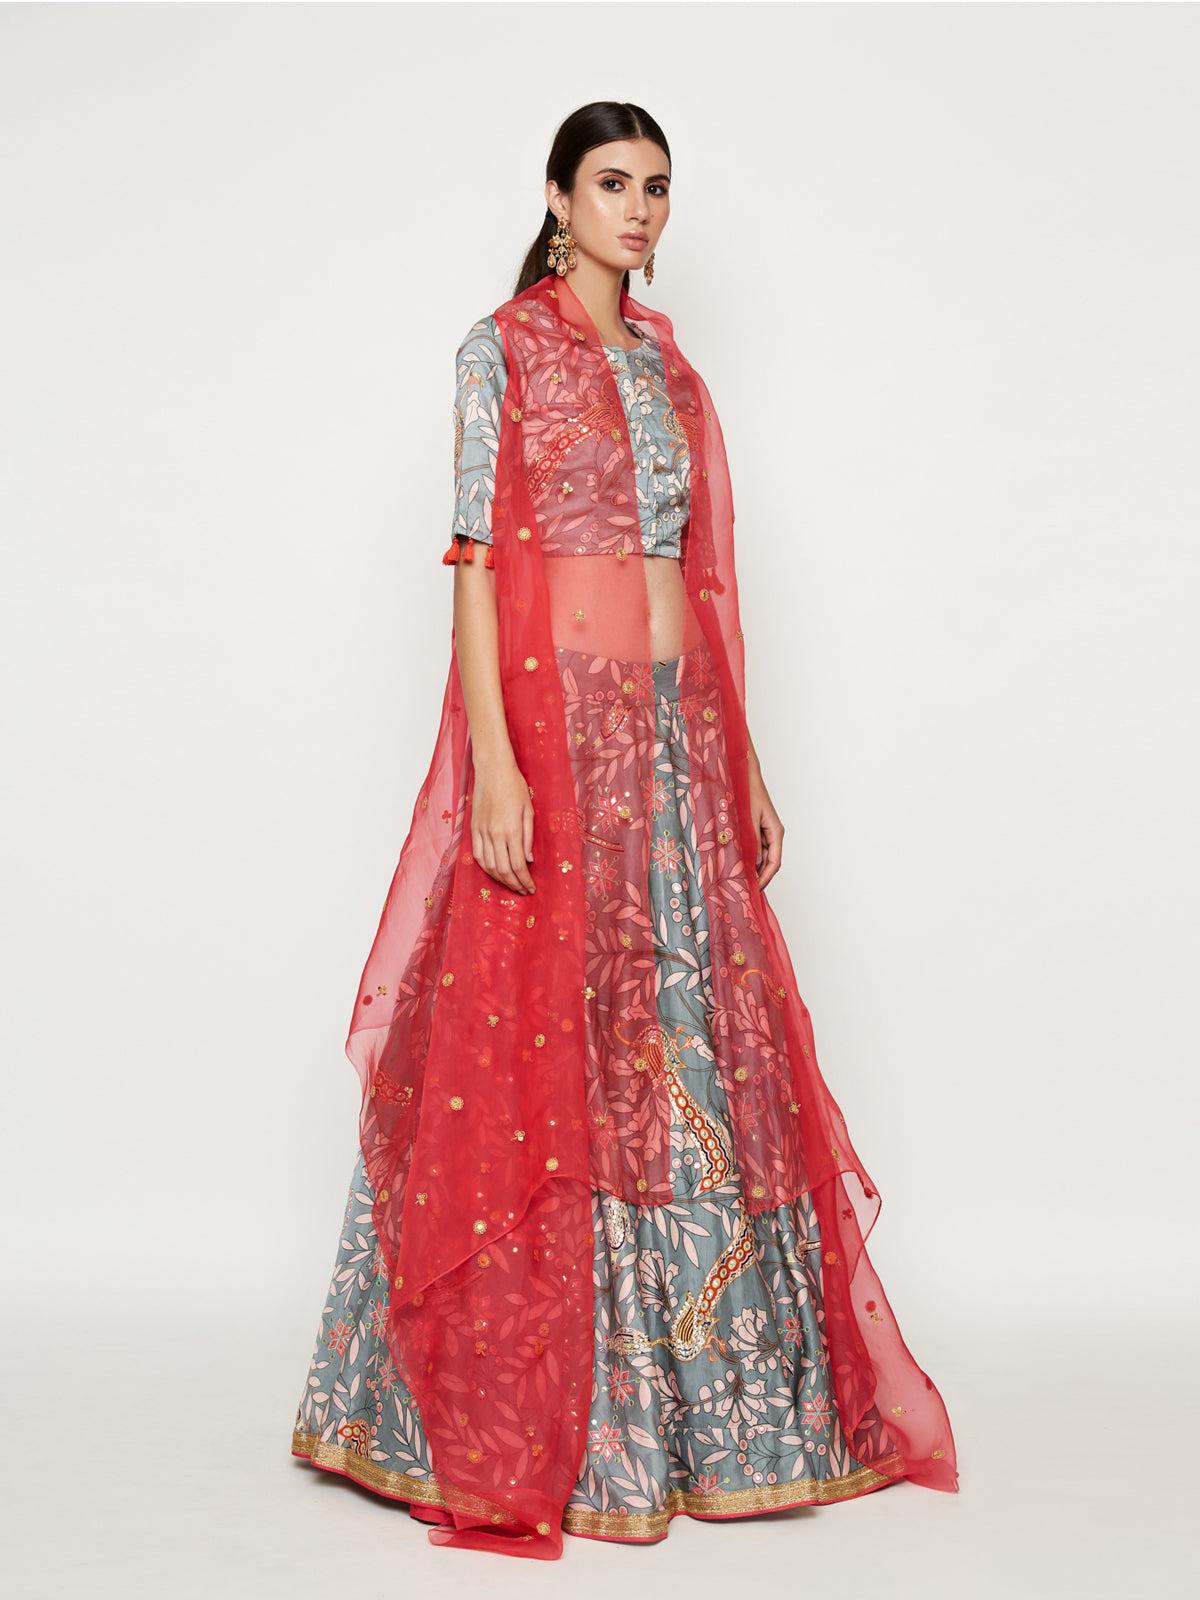 GREY EMBROIDERED LEHENGA CROP TOP WITH PINK CAPE